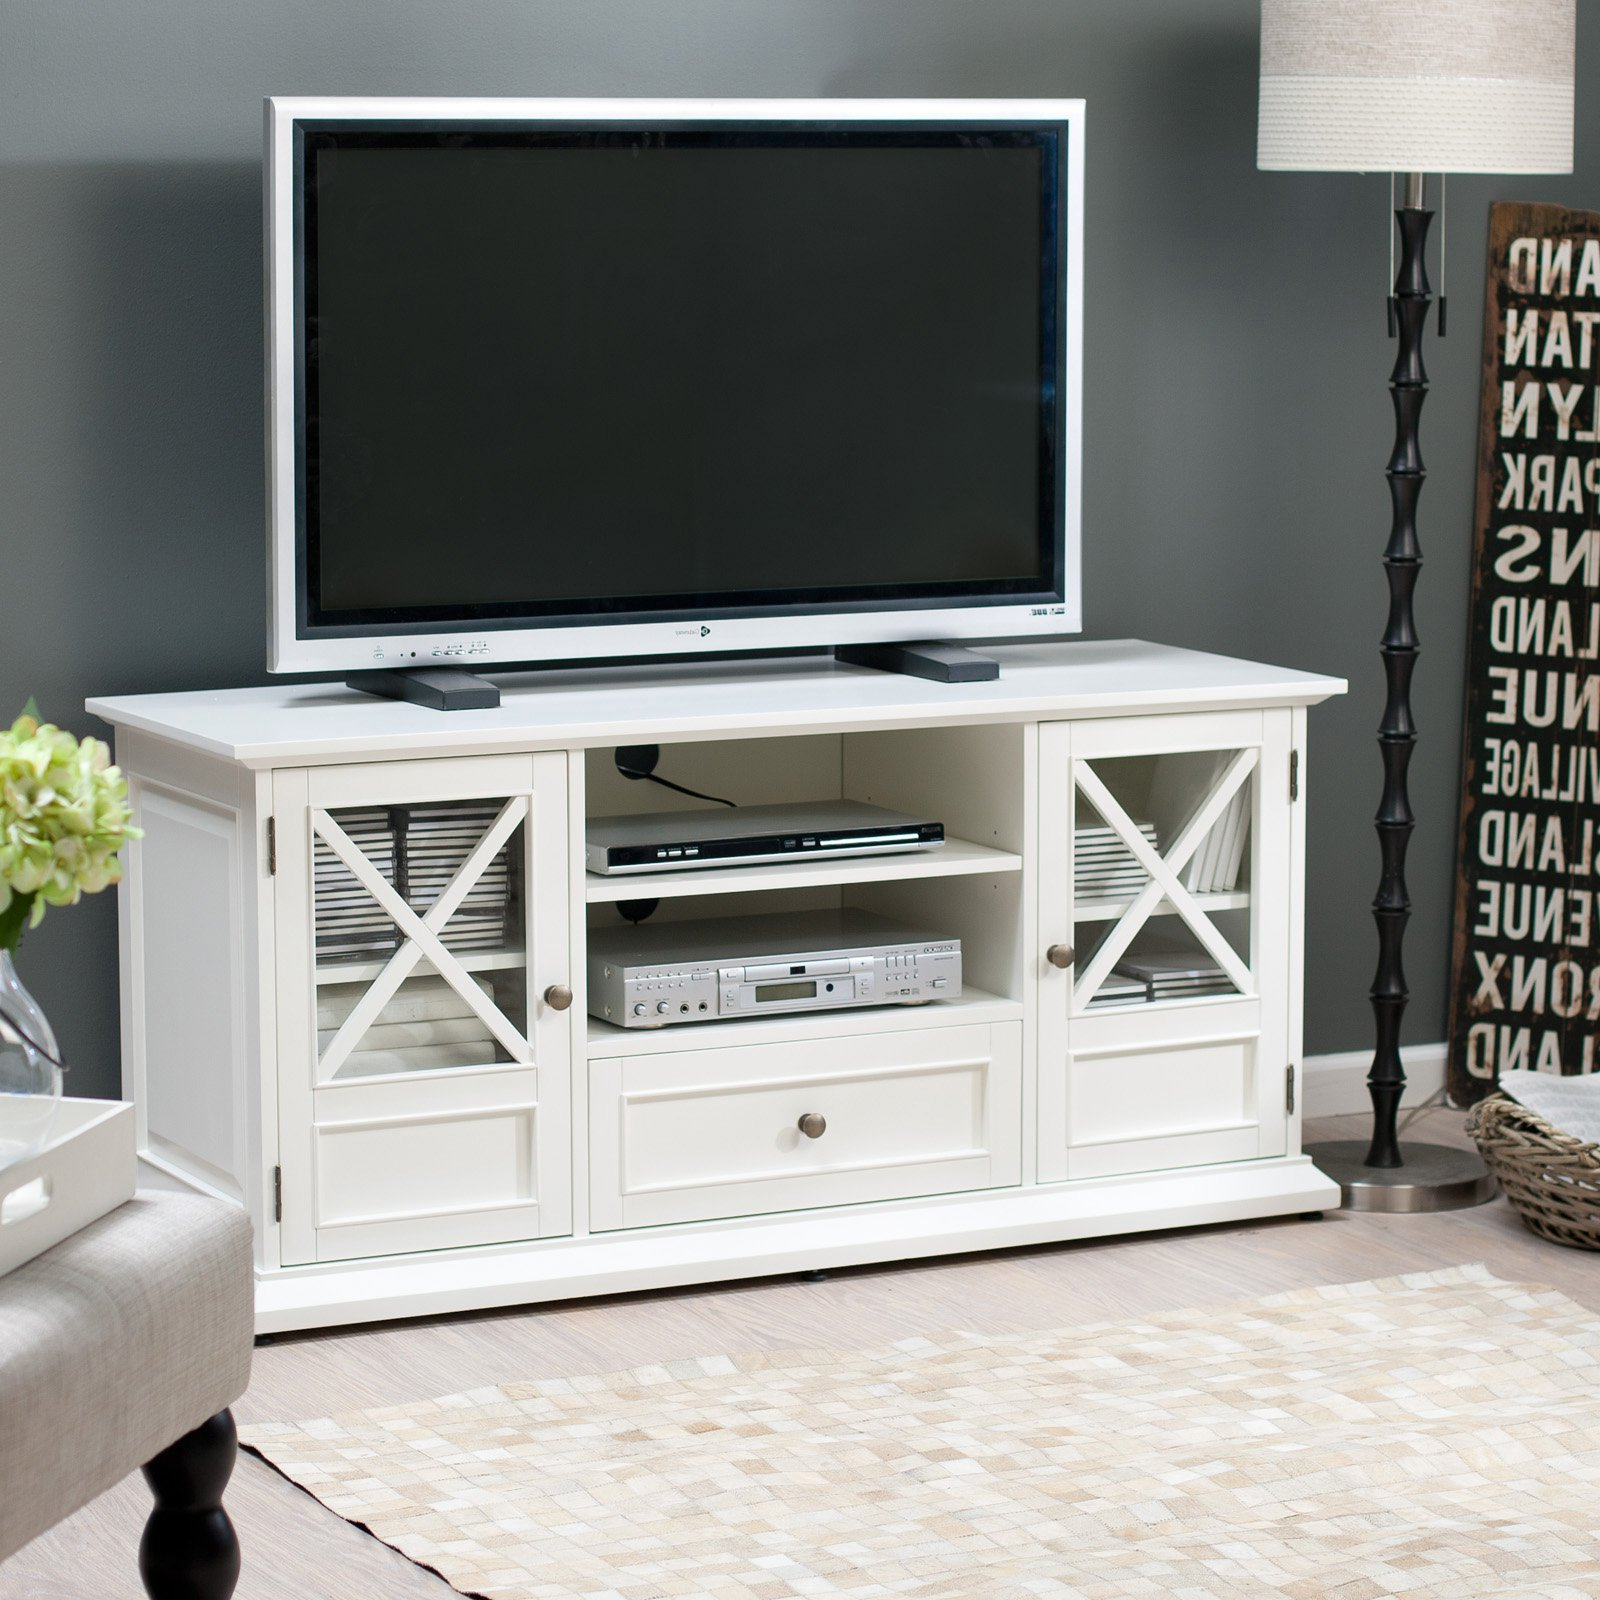 Fashionable Long White Tv Stands With Regard To Belham Living Hampton Tv Stand – White – Walmart (View 5 of 20)